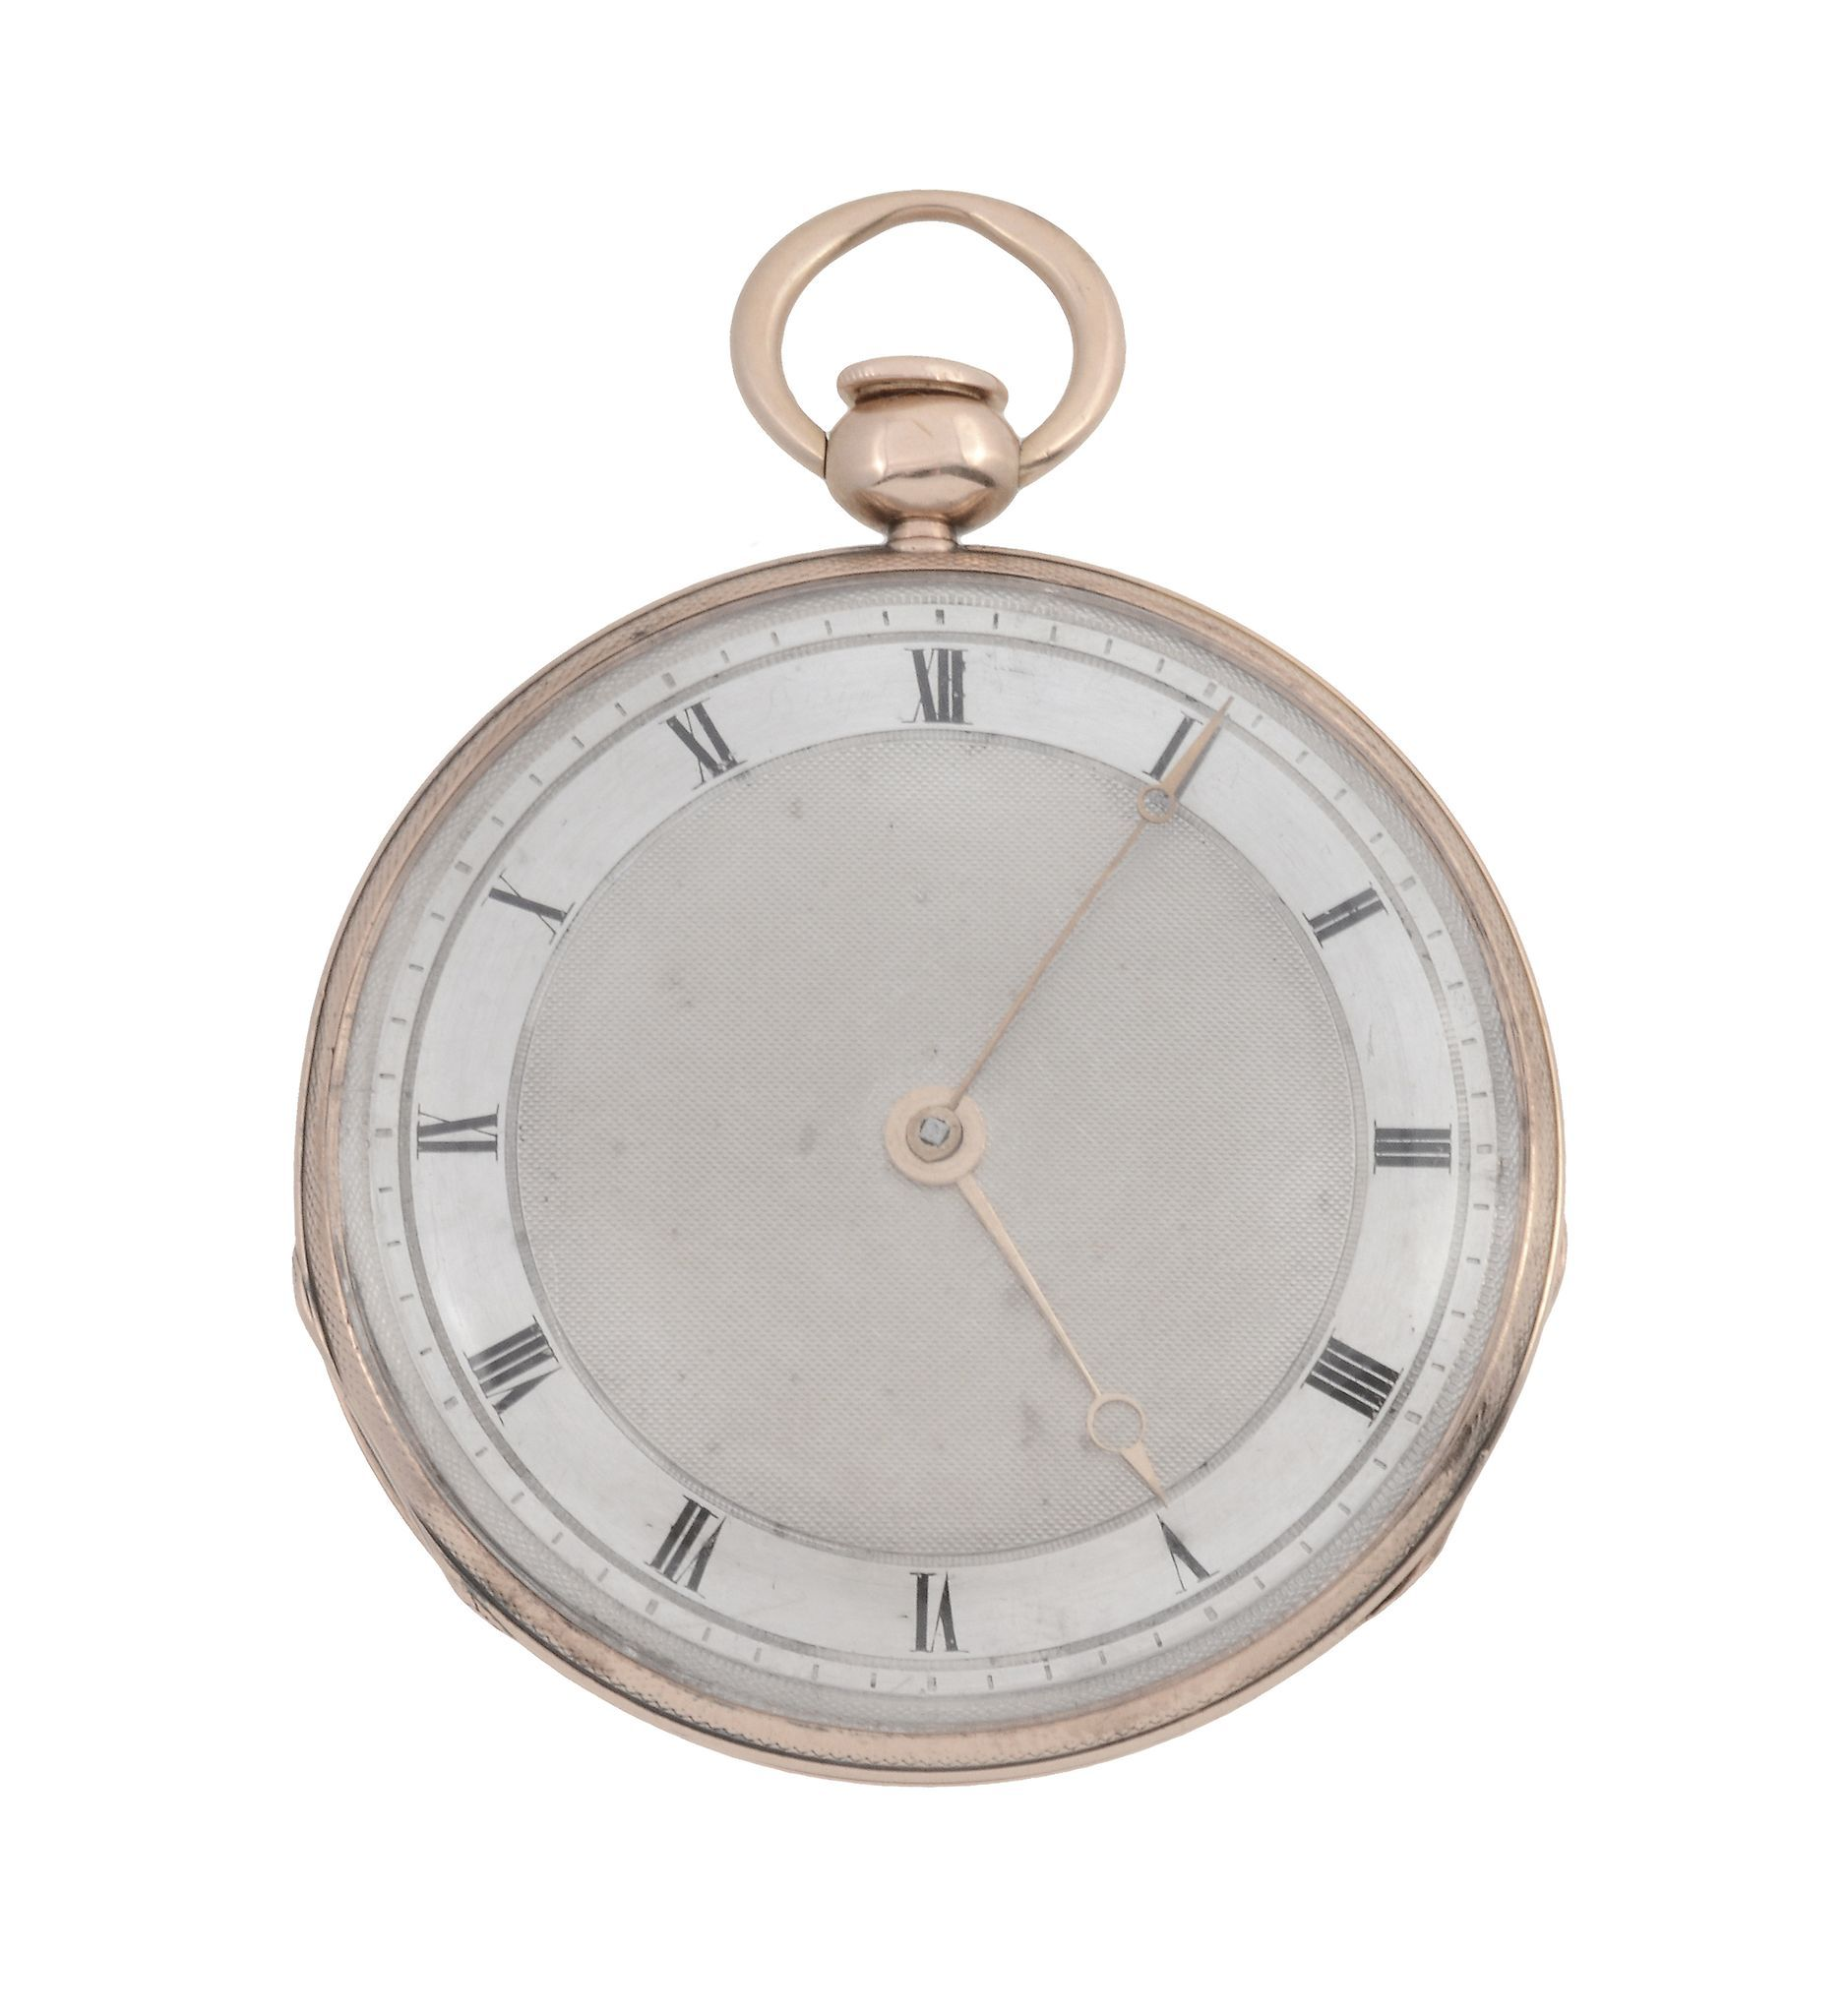 A slim rose gold quarter repeating jewelled cylinder open face watch, signed Breguet, no.4767, circa 1825